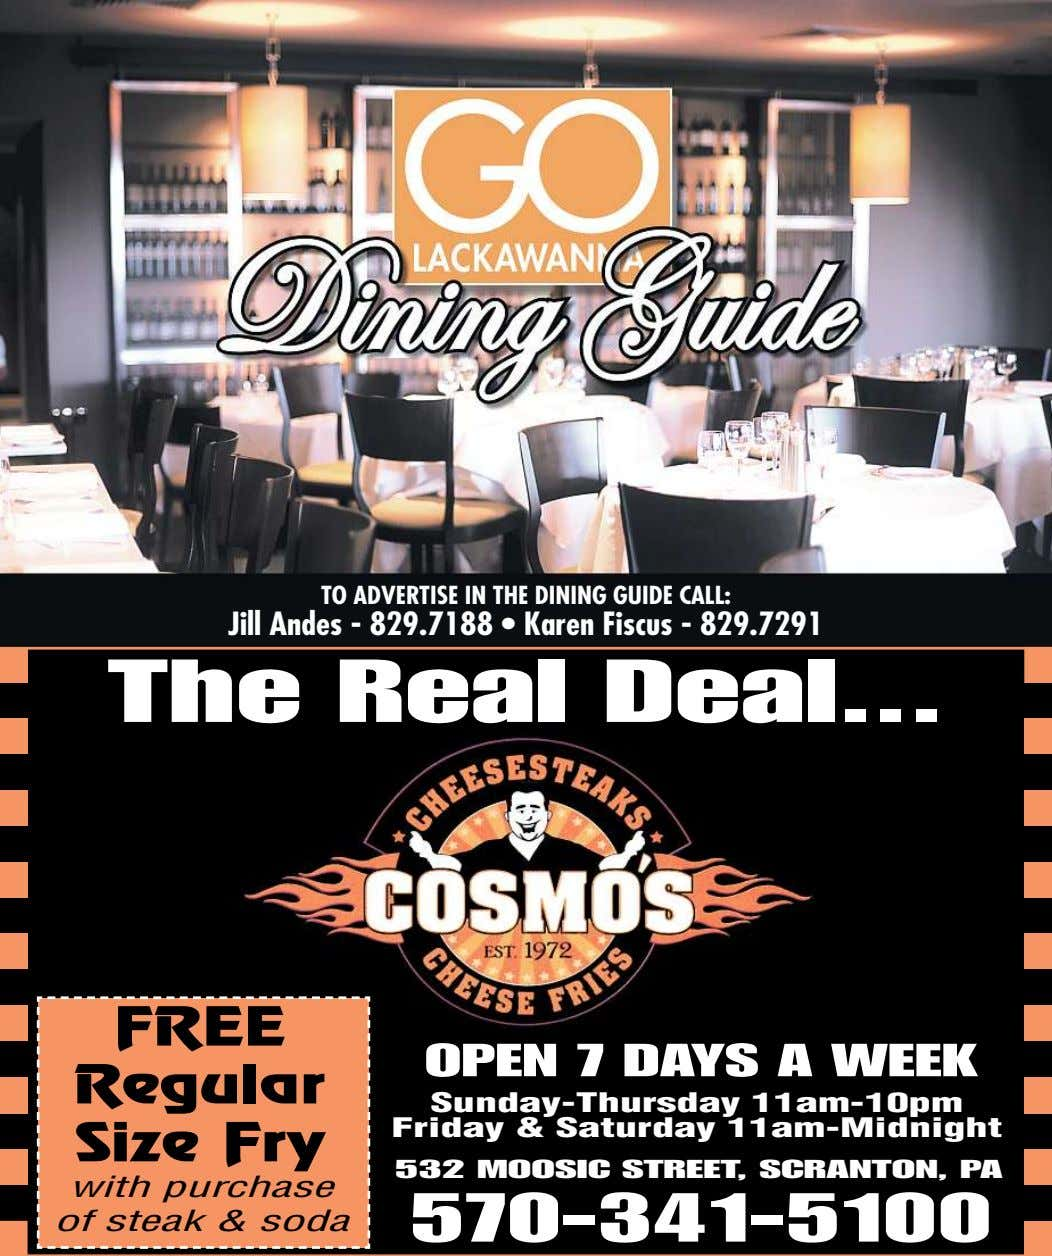 TO ADVERTISE IN THE DINING GUIDE CALL: Jill Andes - 829.7188 • Karen Fiscus -